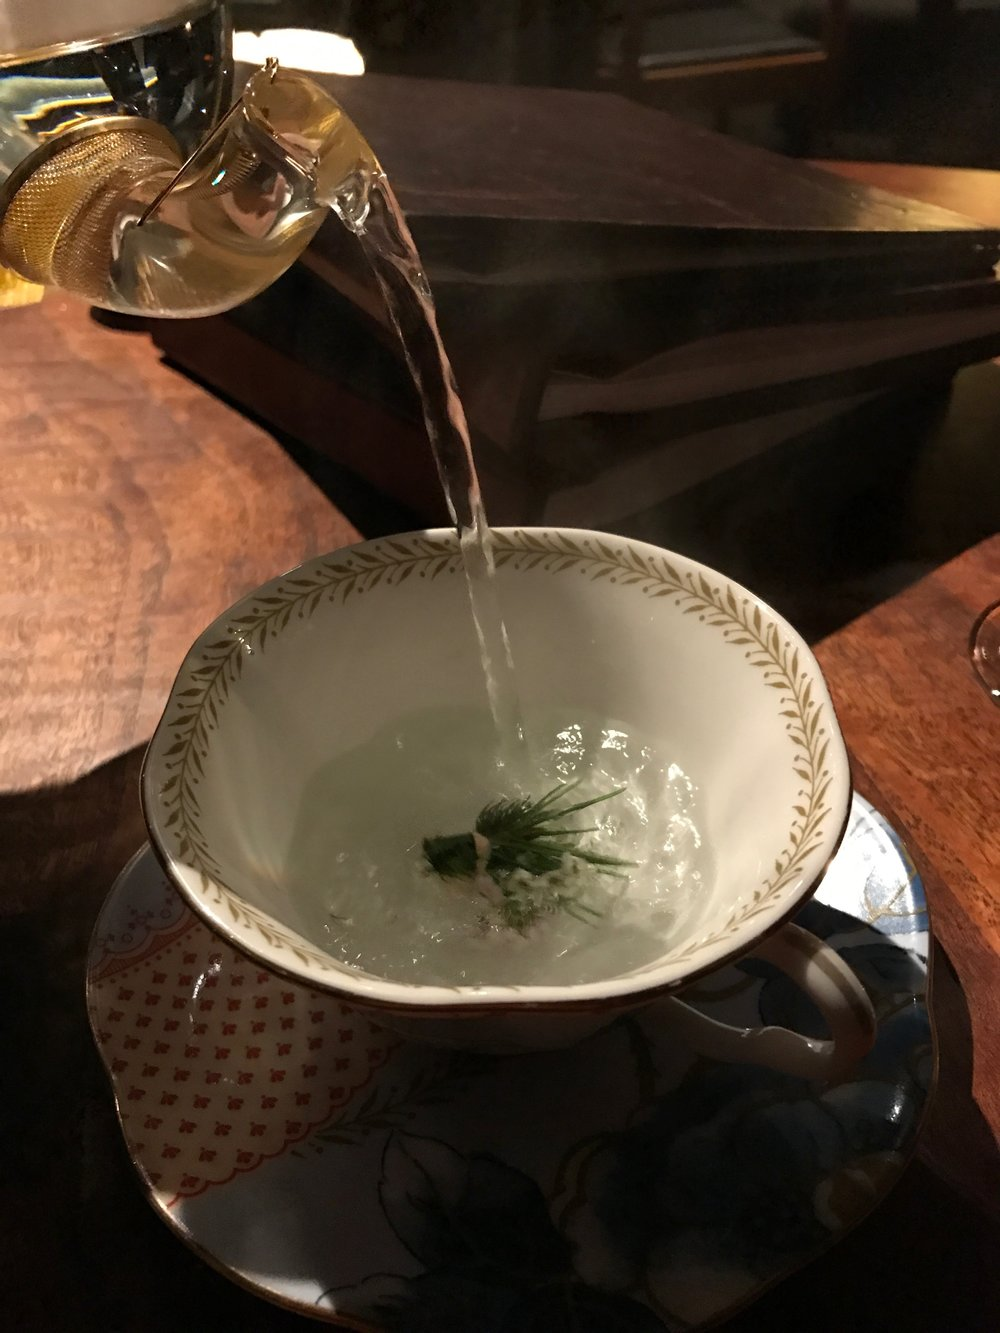 Infusion of herbs from our garden - Starting with an herbal infusion is a lovely and light way to begin; it forces you to breathe deeply and focus on the meal that's about to come. The practice feels meditative and lovely, and more restaurants should adopt teas and nonalcoholic infusions as an accompaniment to food.